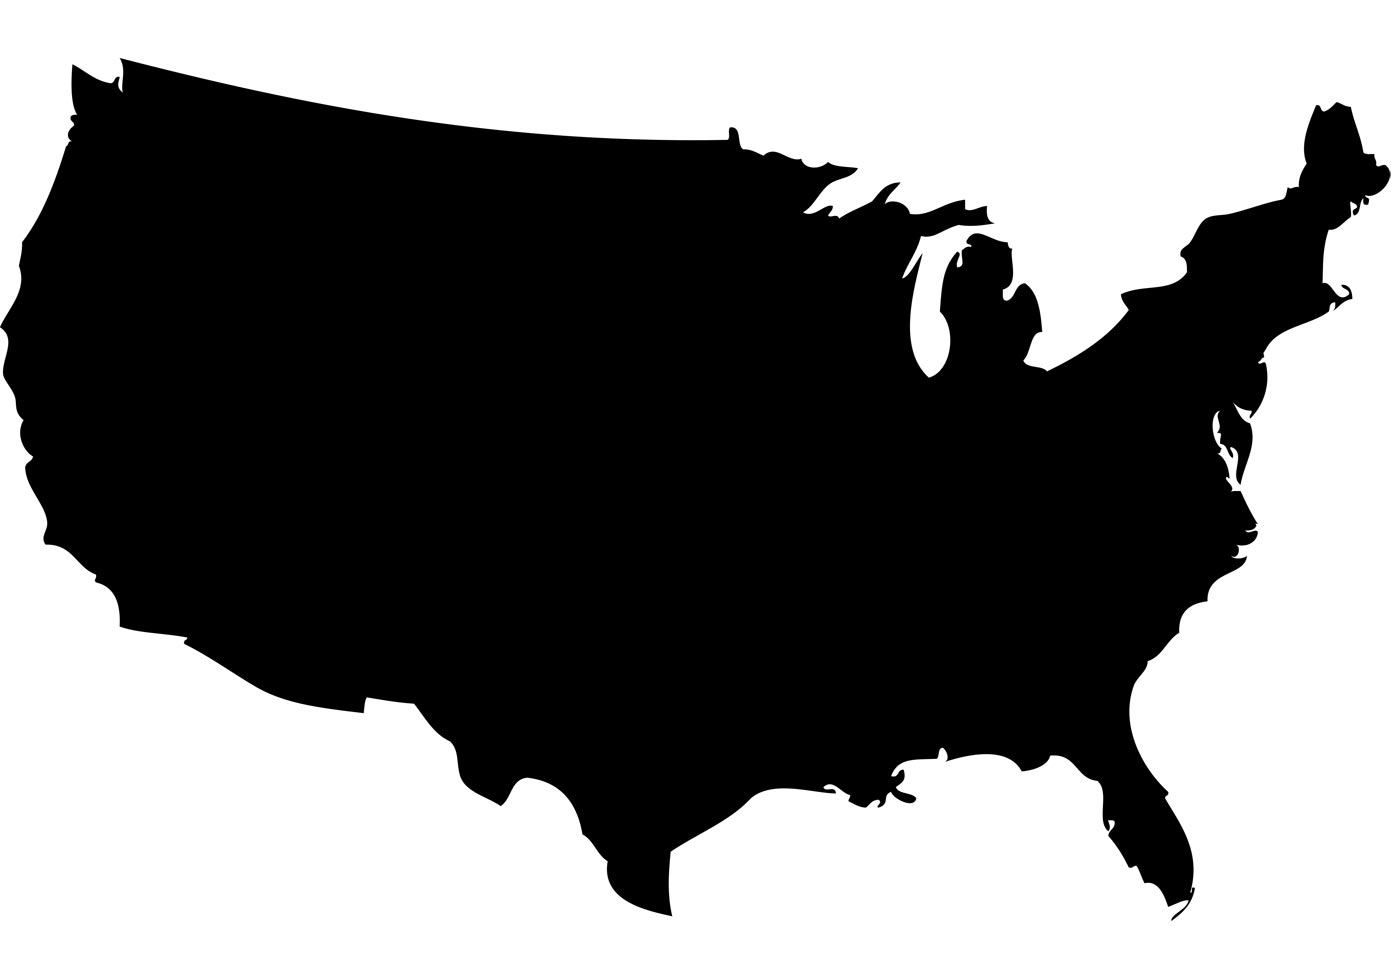 United States Outline Clipart.